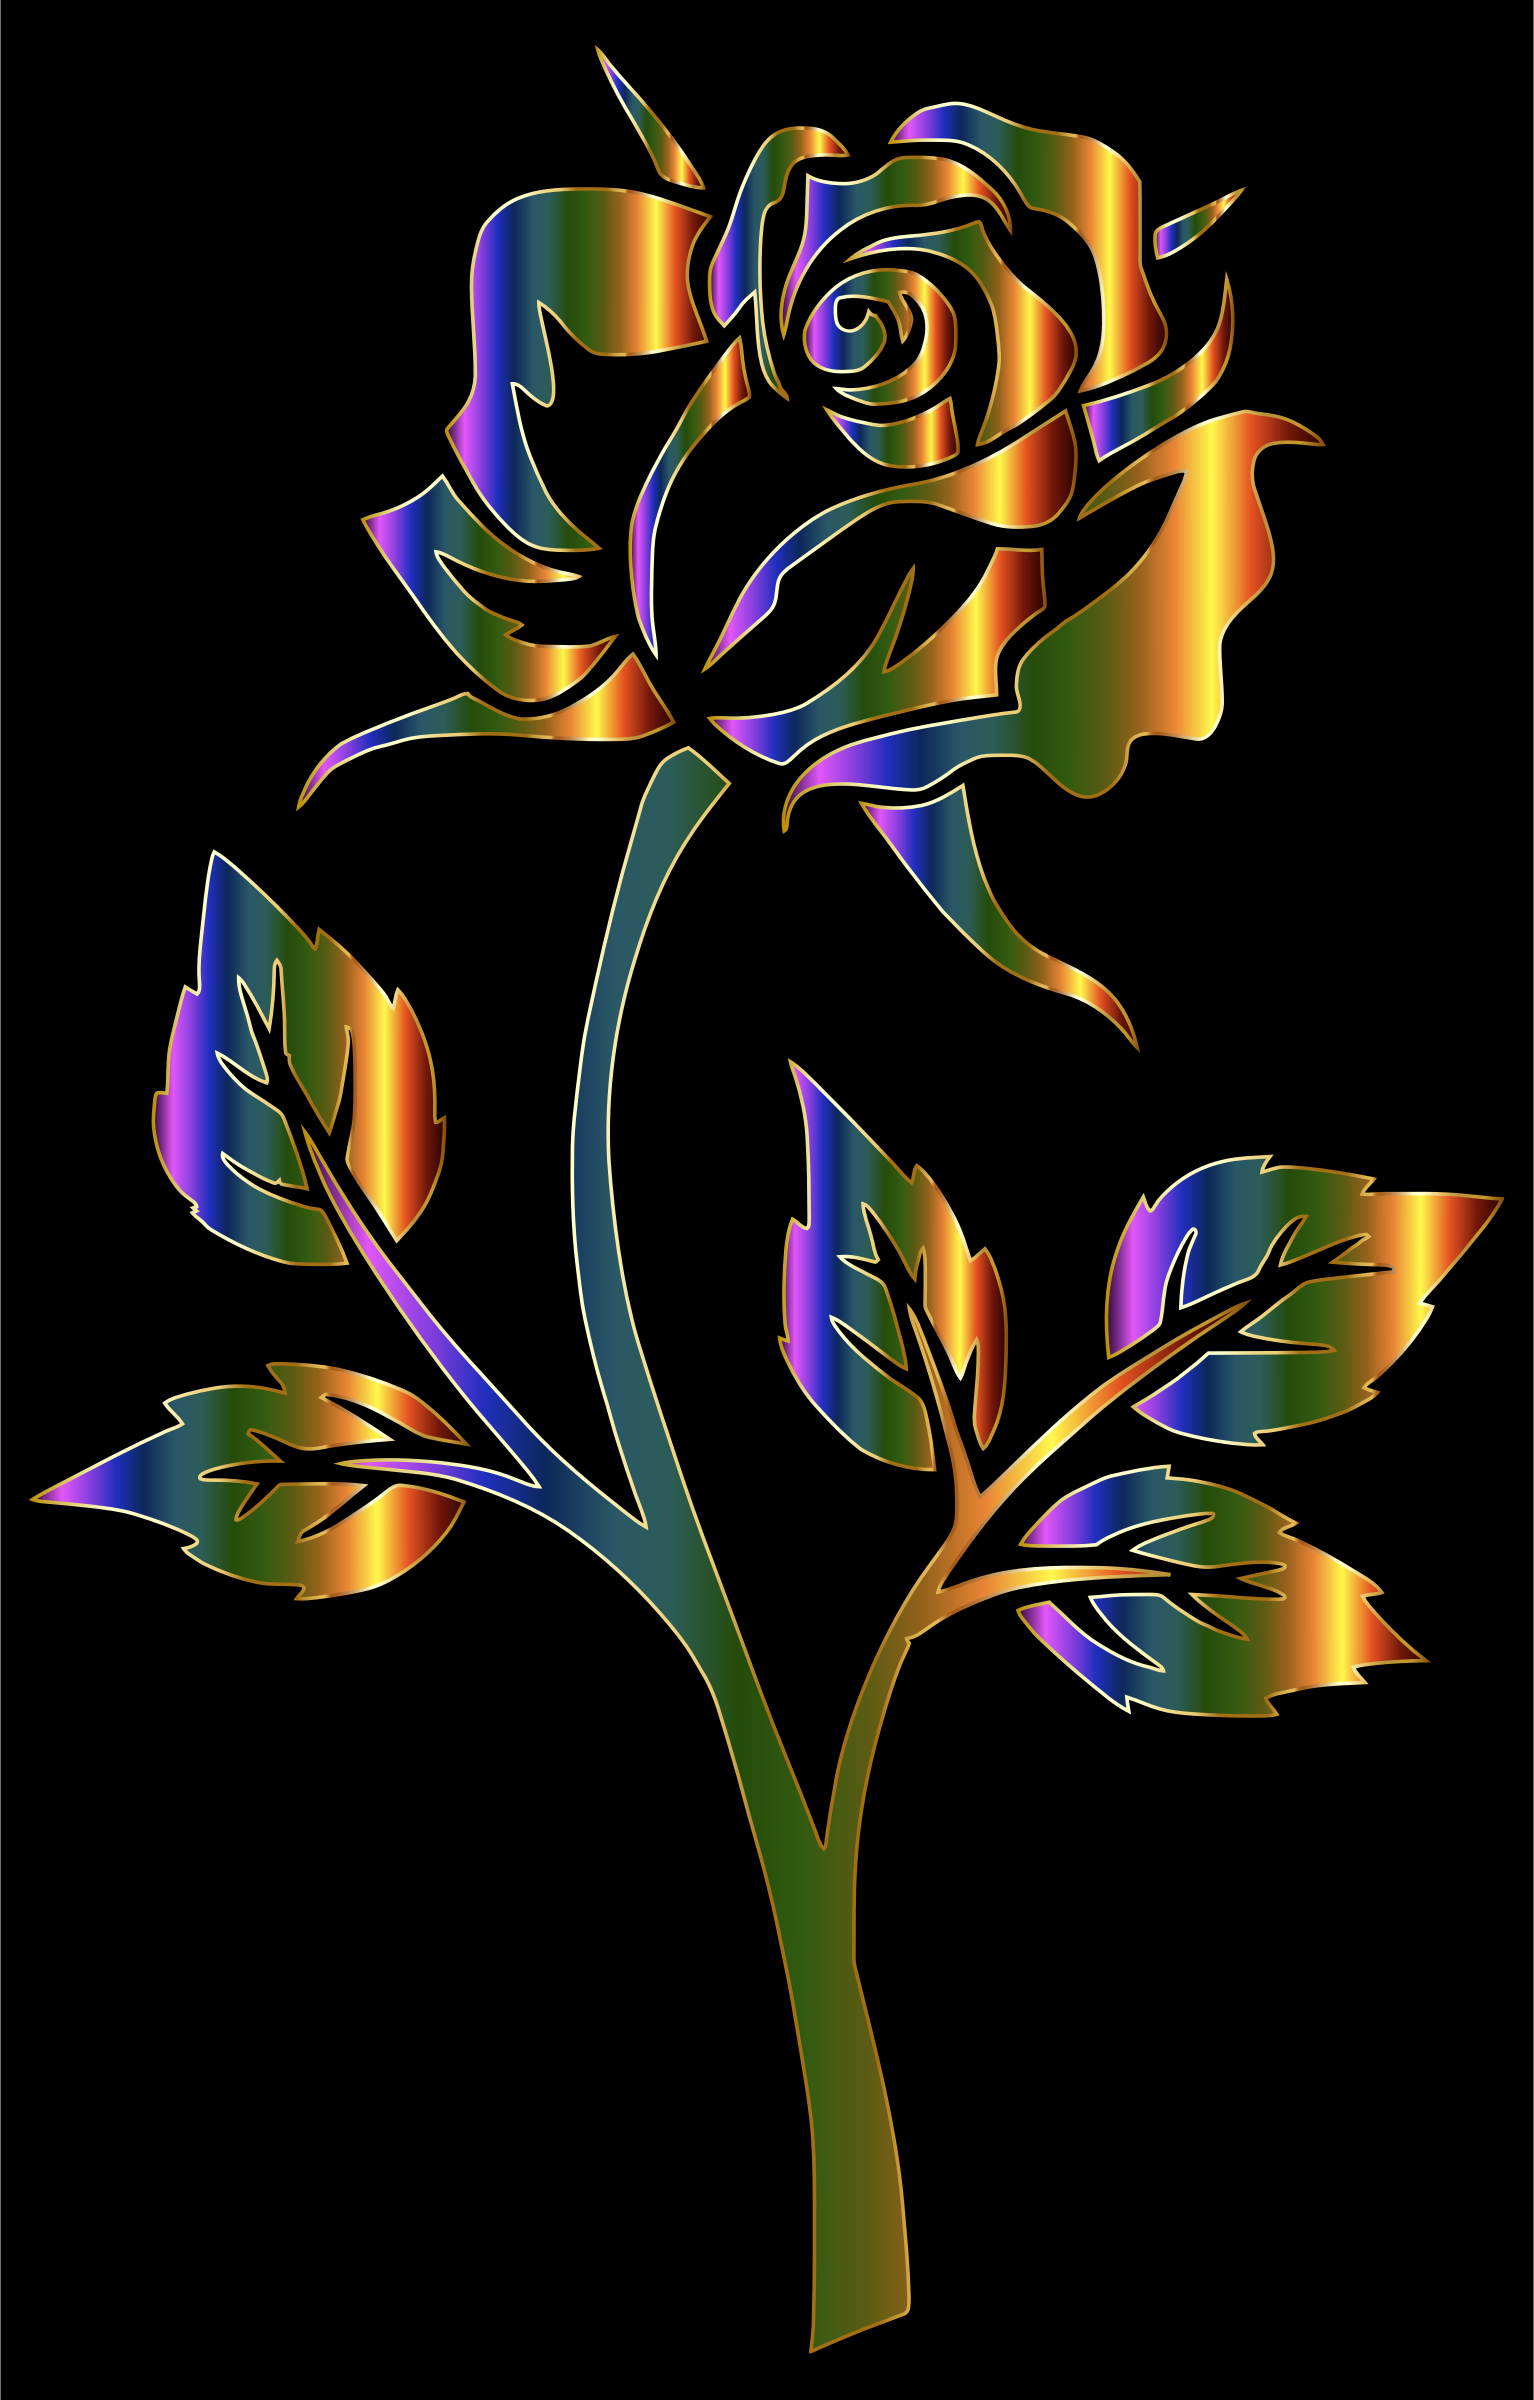 Chromatic Rose Silhouette Variation 2 by GDJ